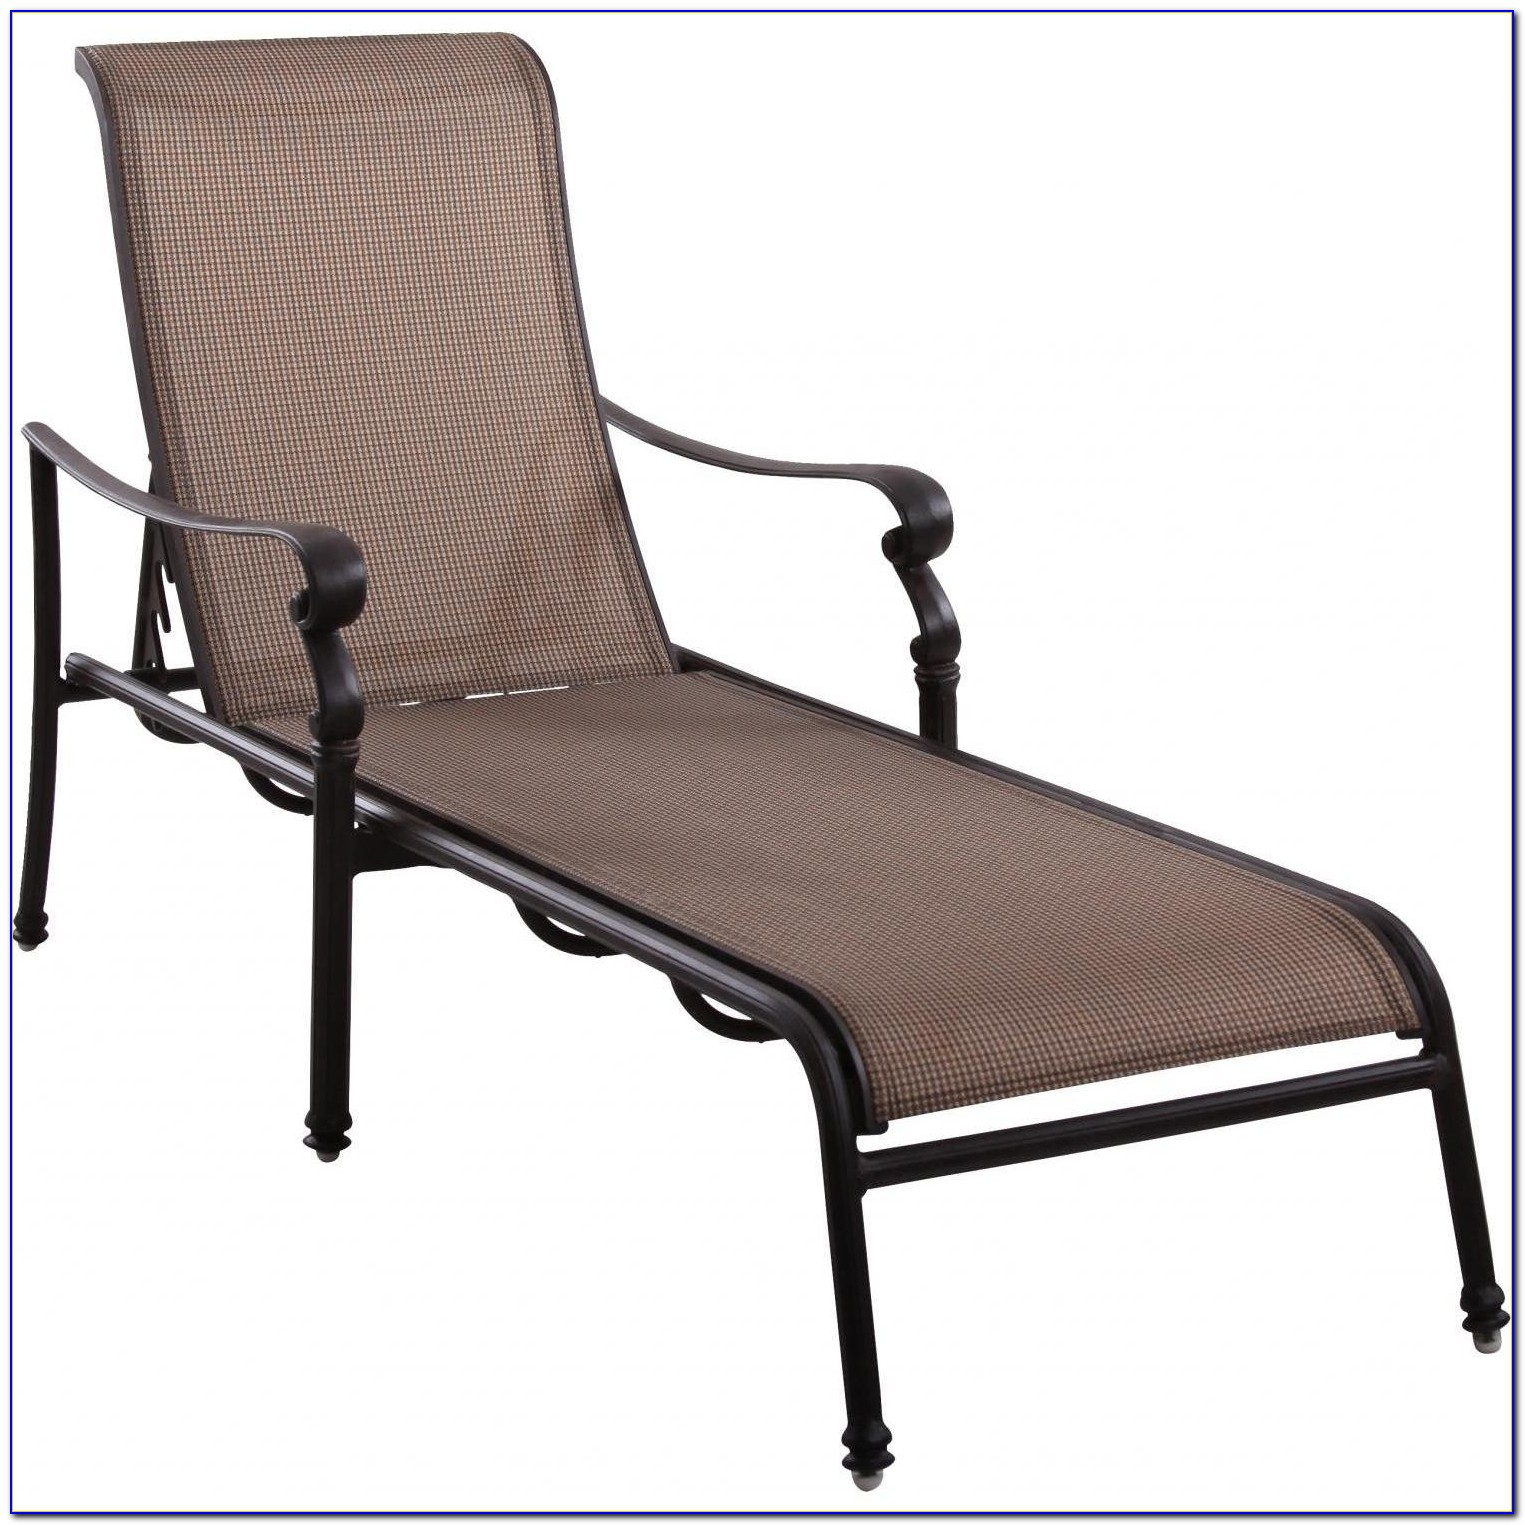 Patio Chaise Lounge Aluminum